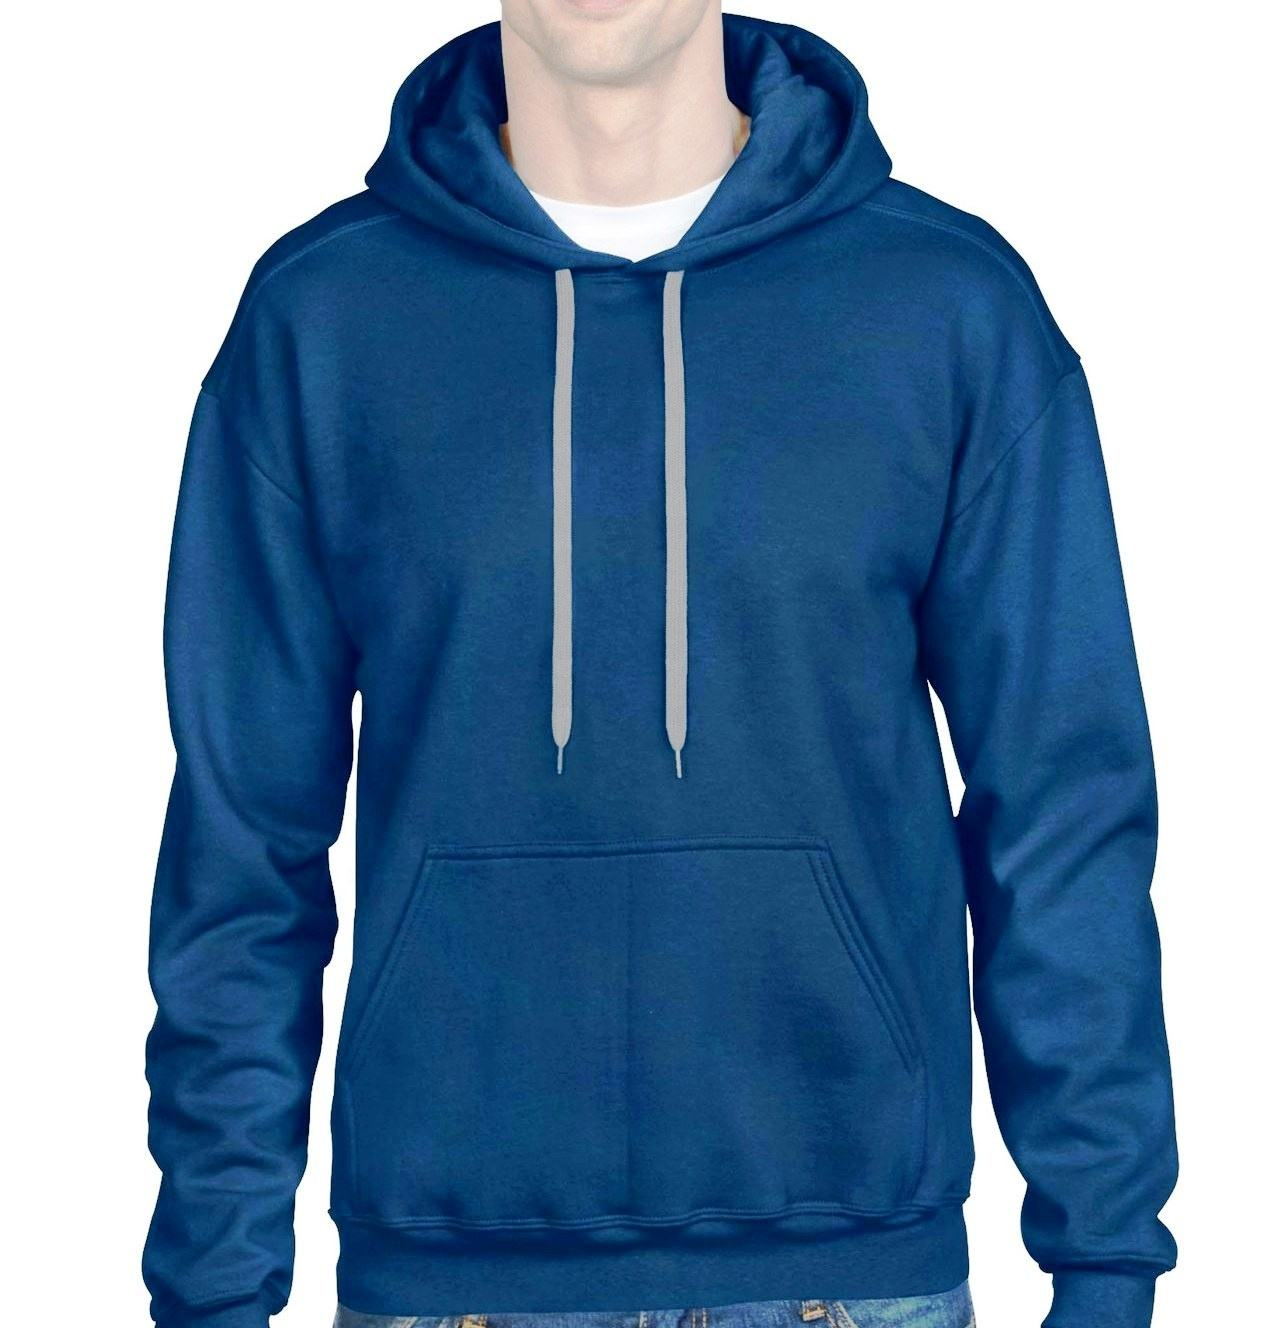 Custom Fleece 50% Cotton 50% Polyester Drop Shoulders Men's Oversize Pullover Hoodie